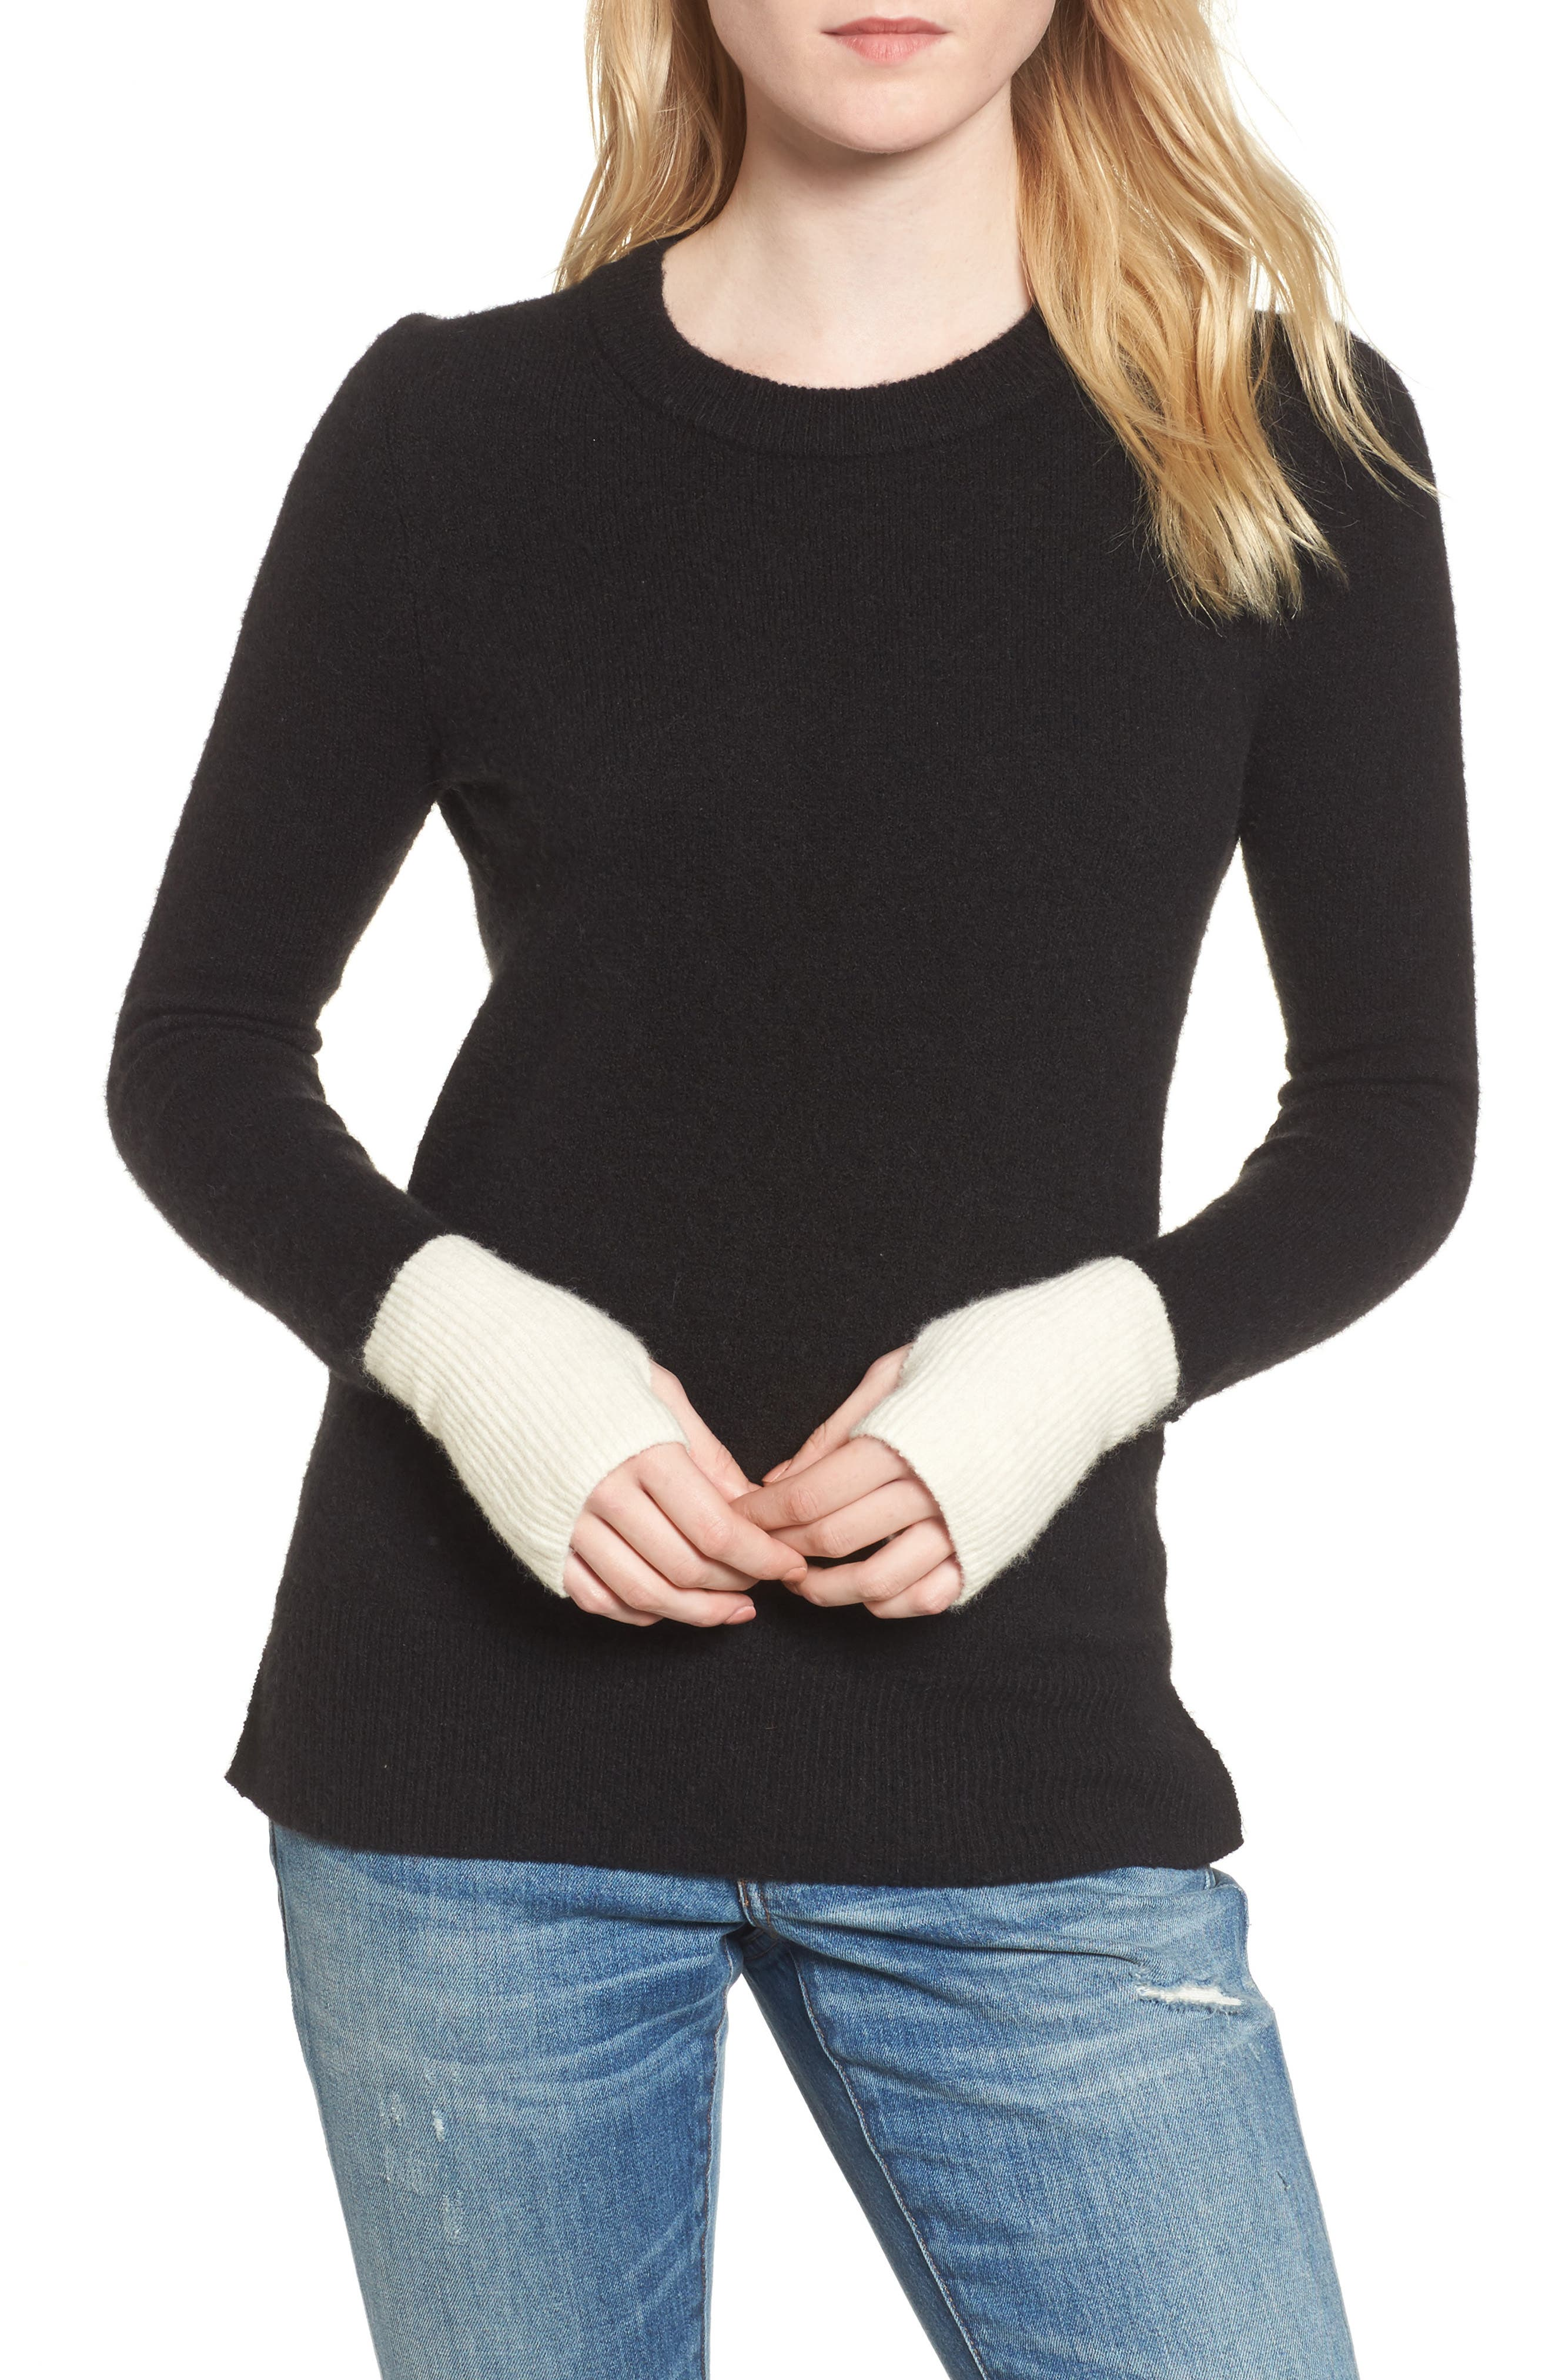 Fremont Colorblock Pullover Sweater,                             Main thumbnail 1, color,                             010